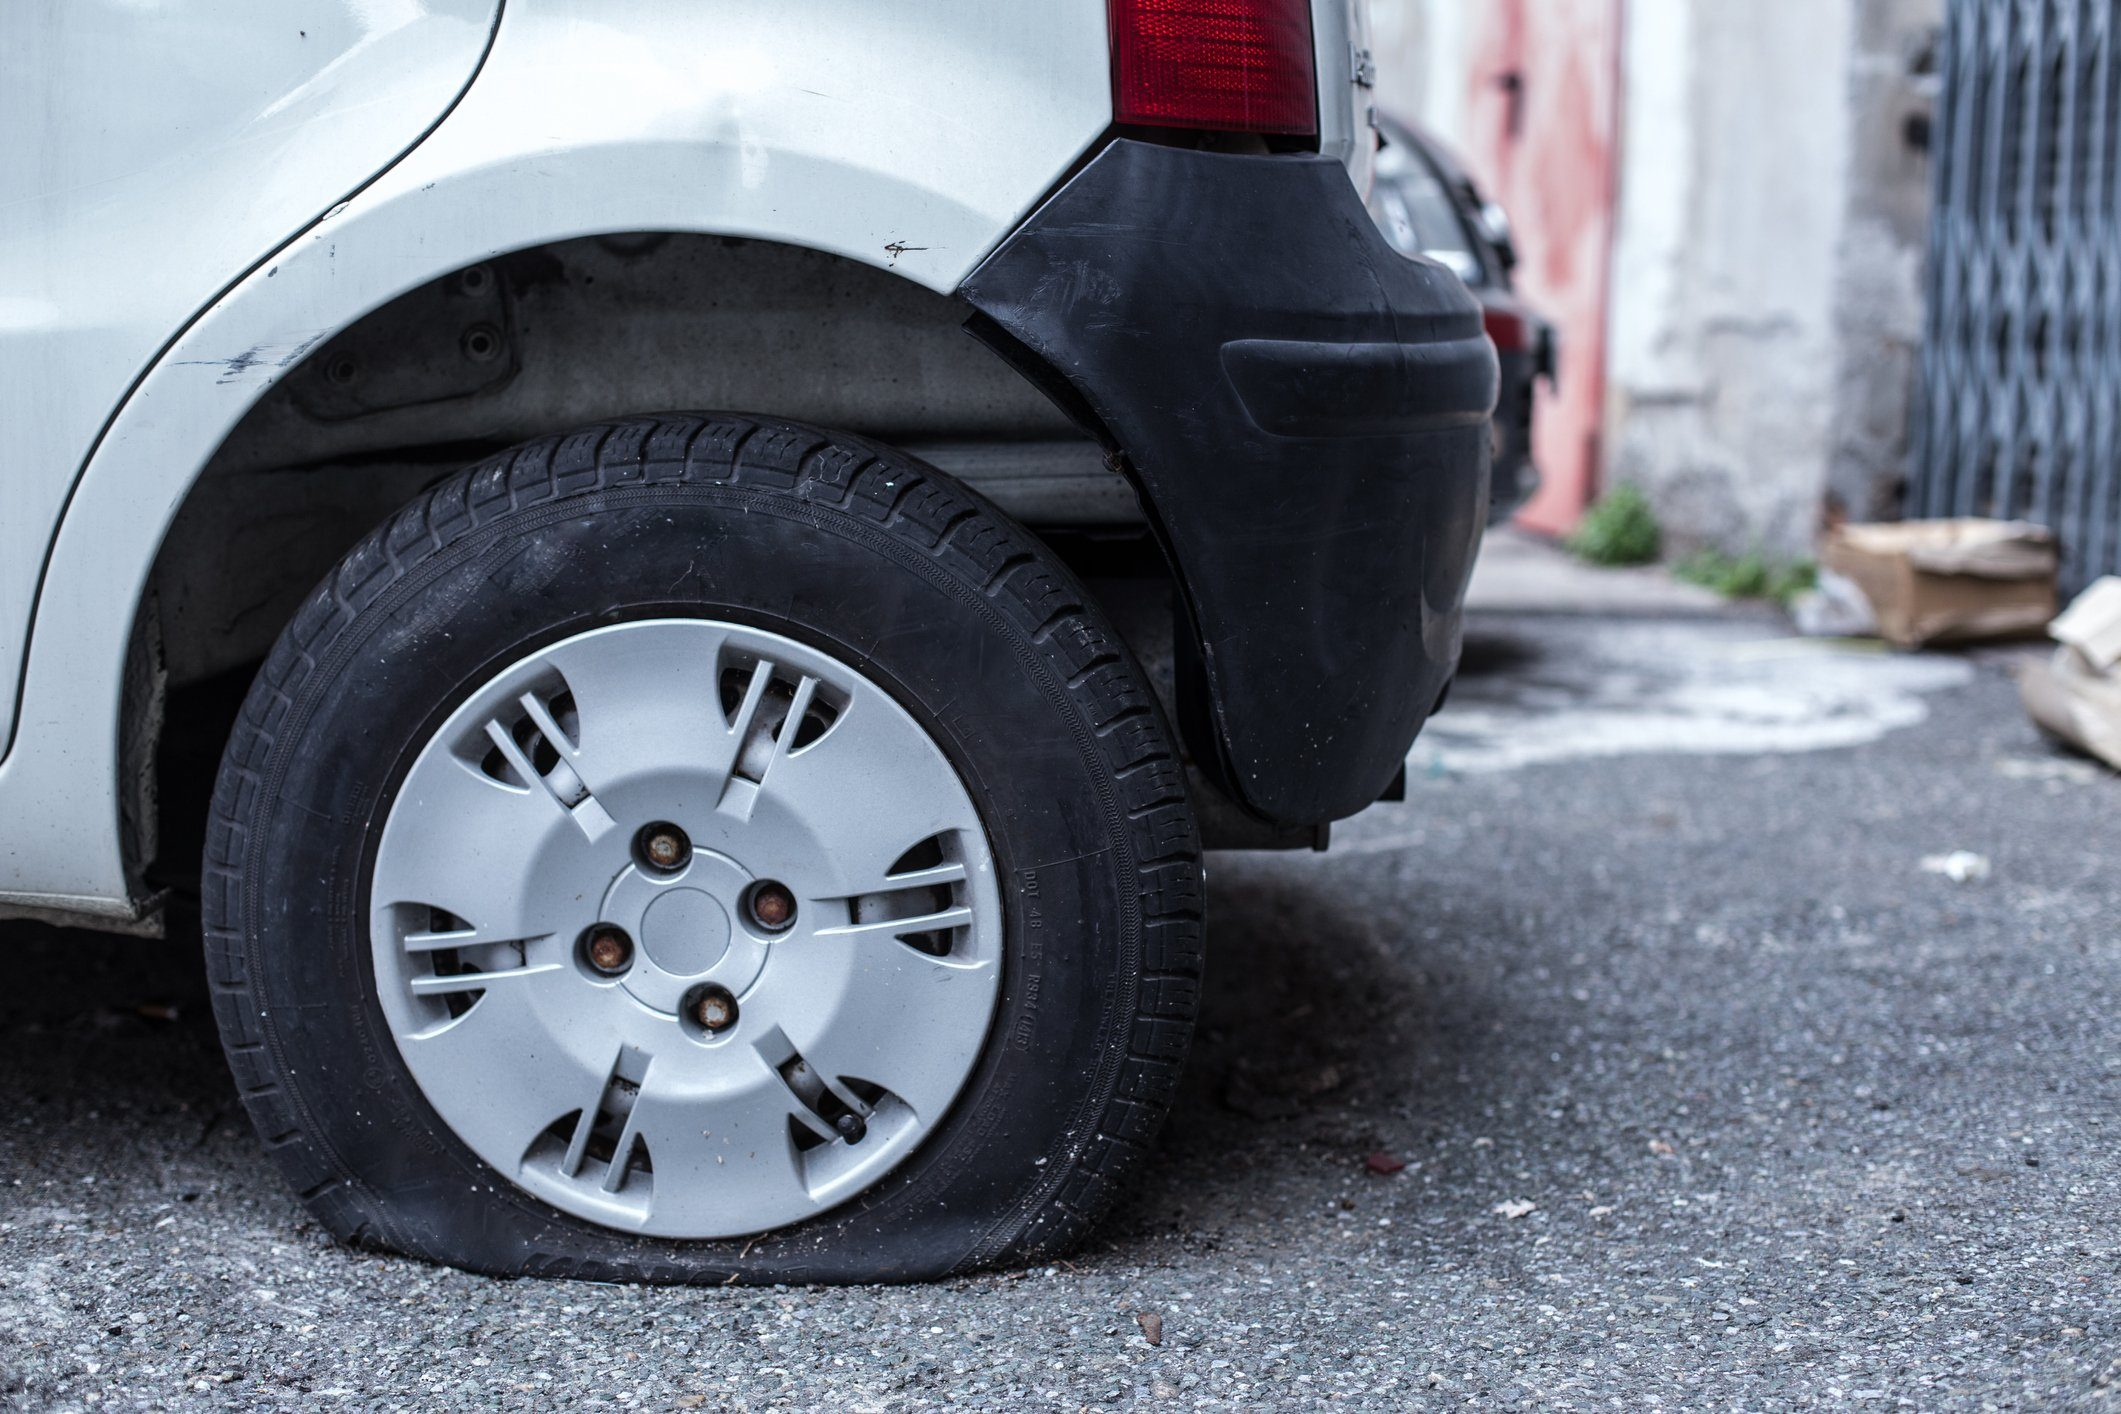 Close-Up Of Car With Puncture Tire